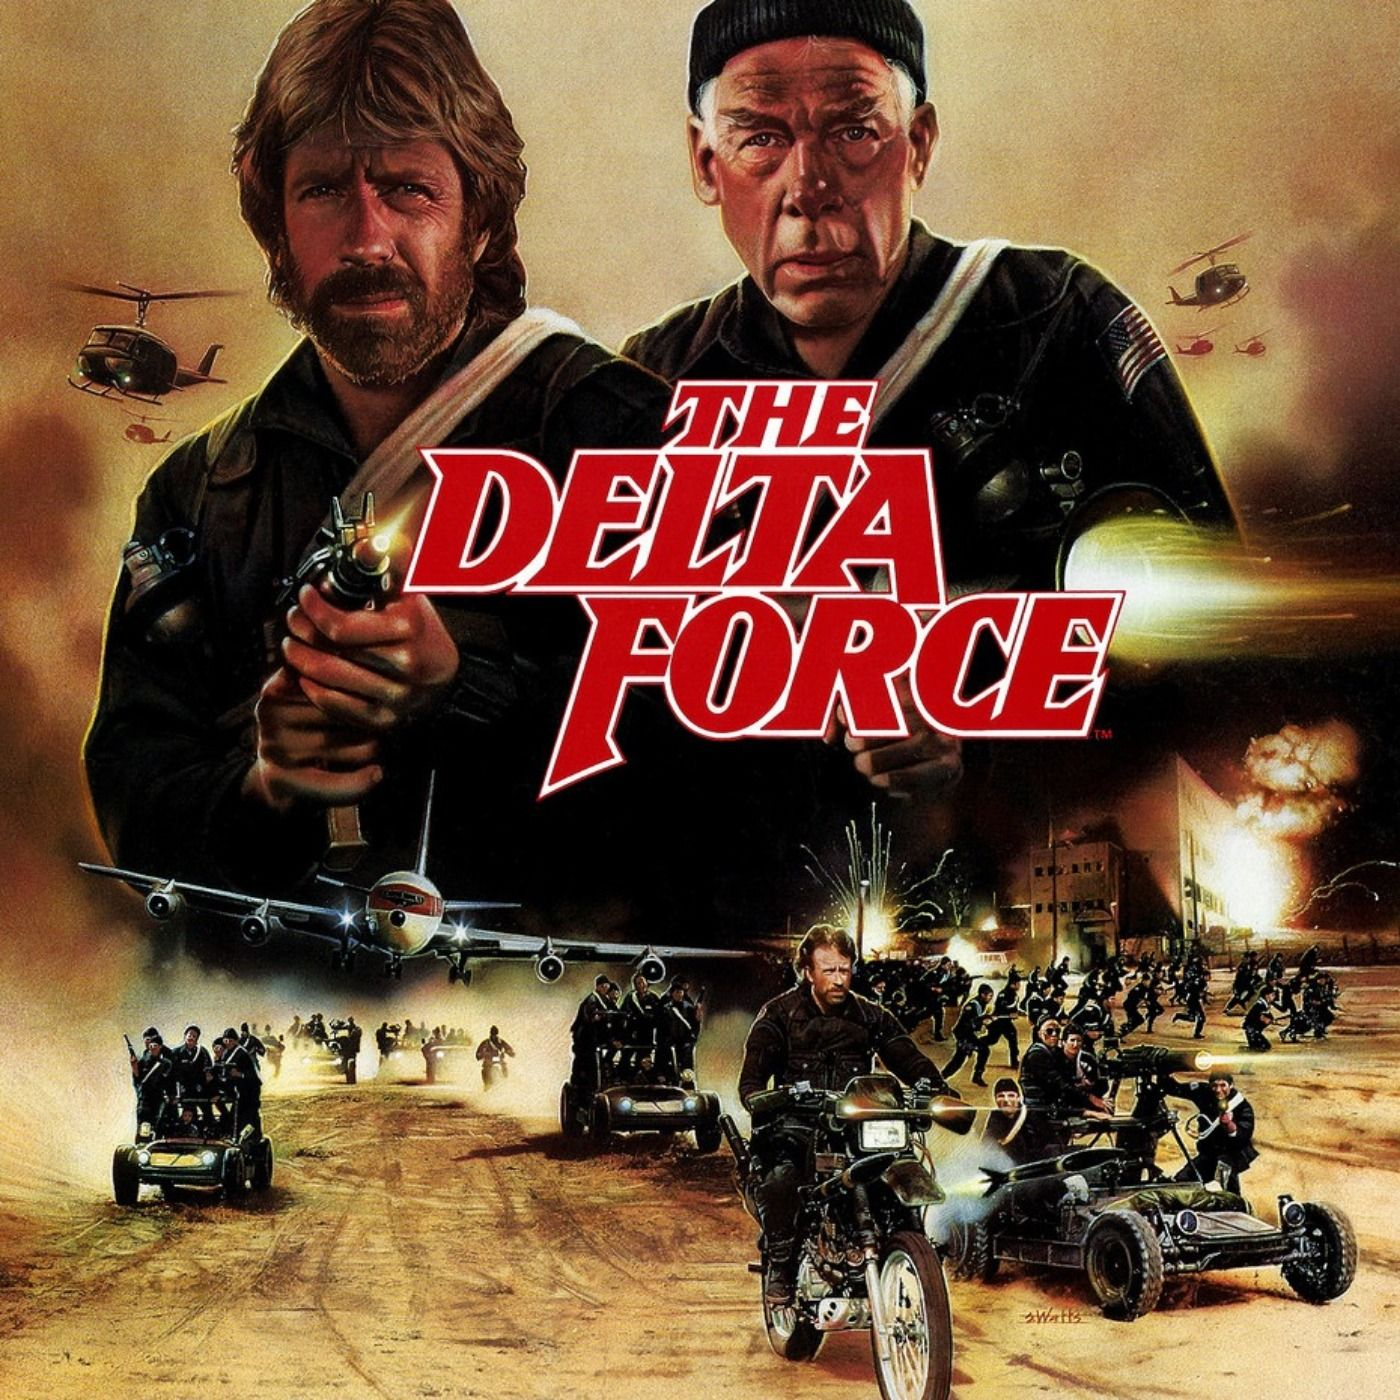 CRITIQUE DU FILM THE DELTA FORCE